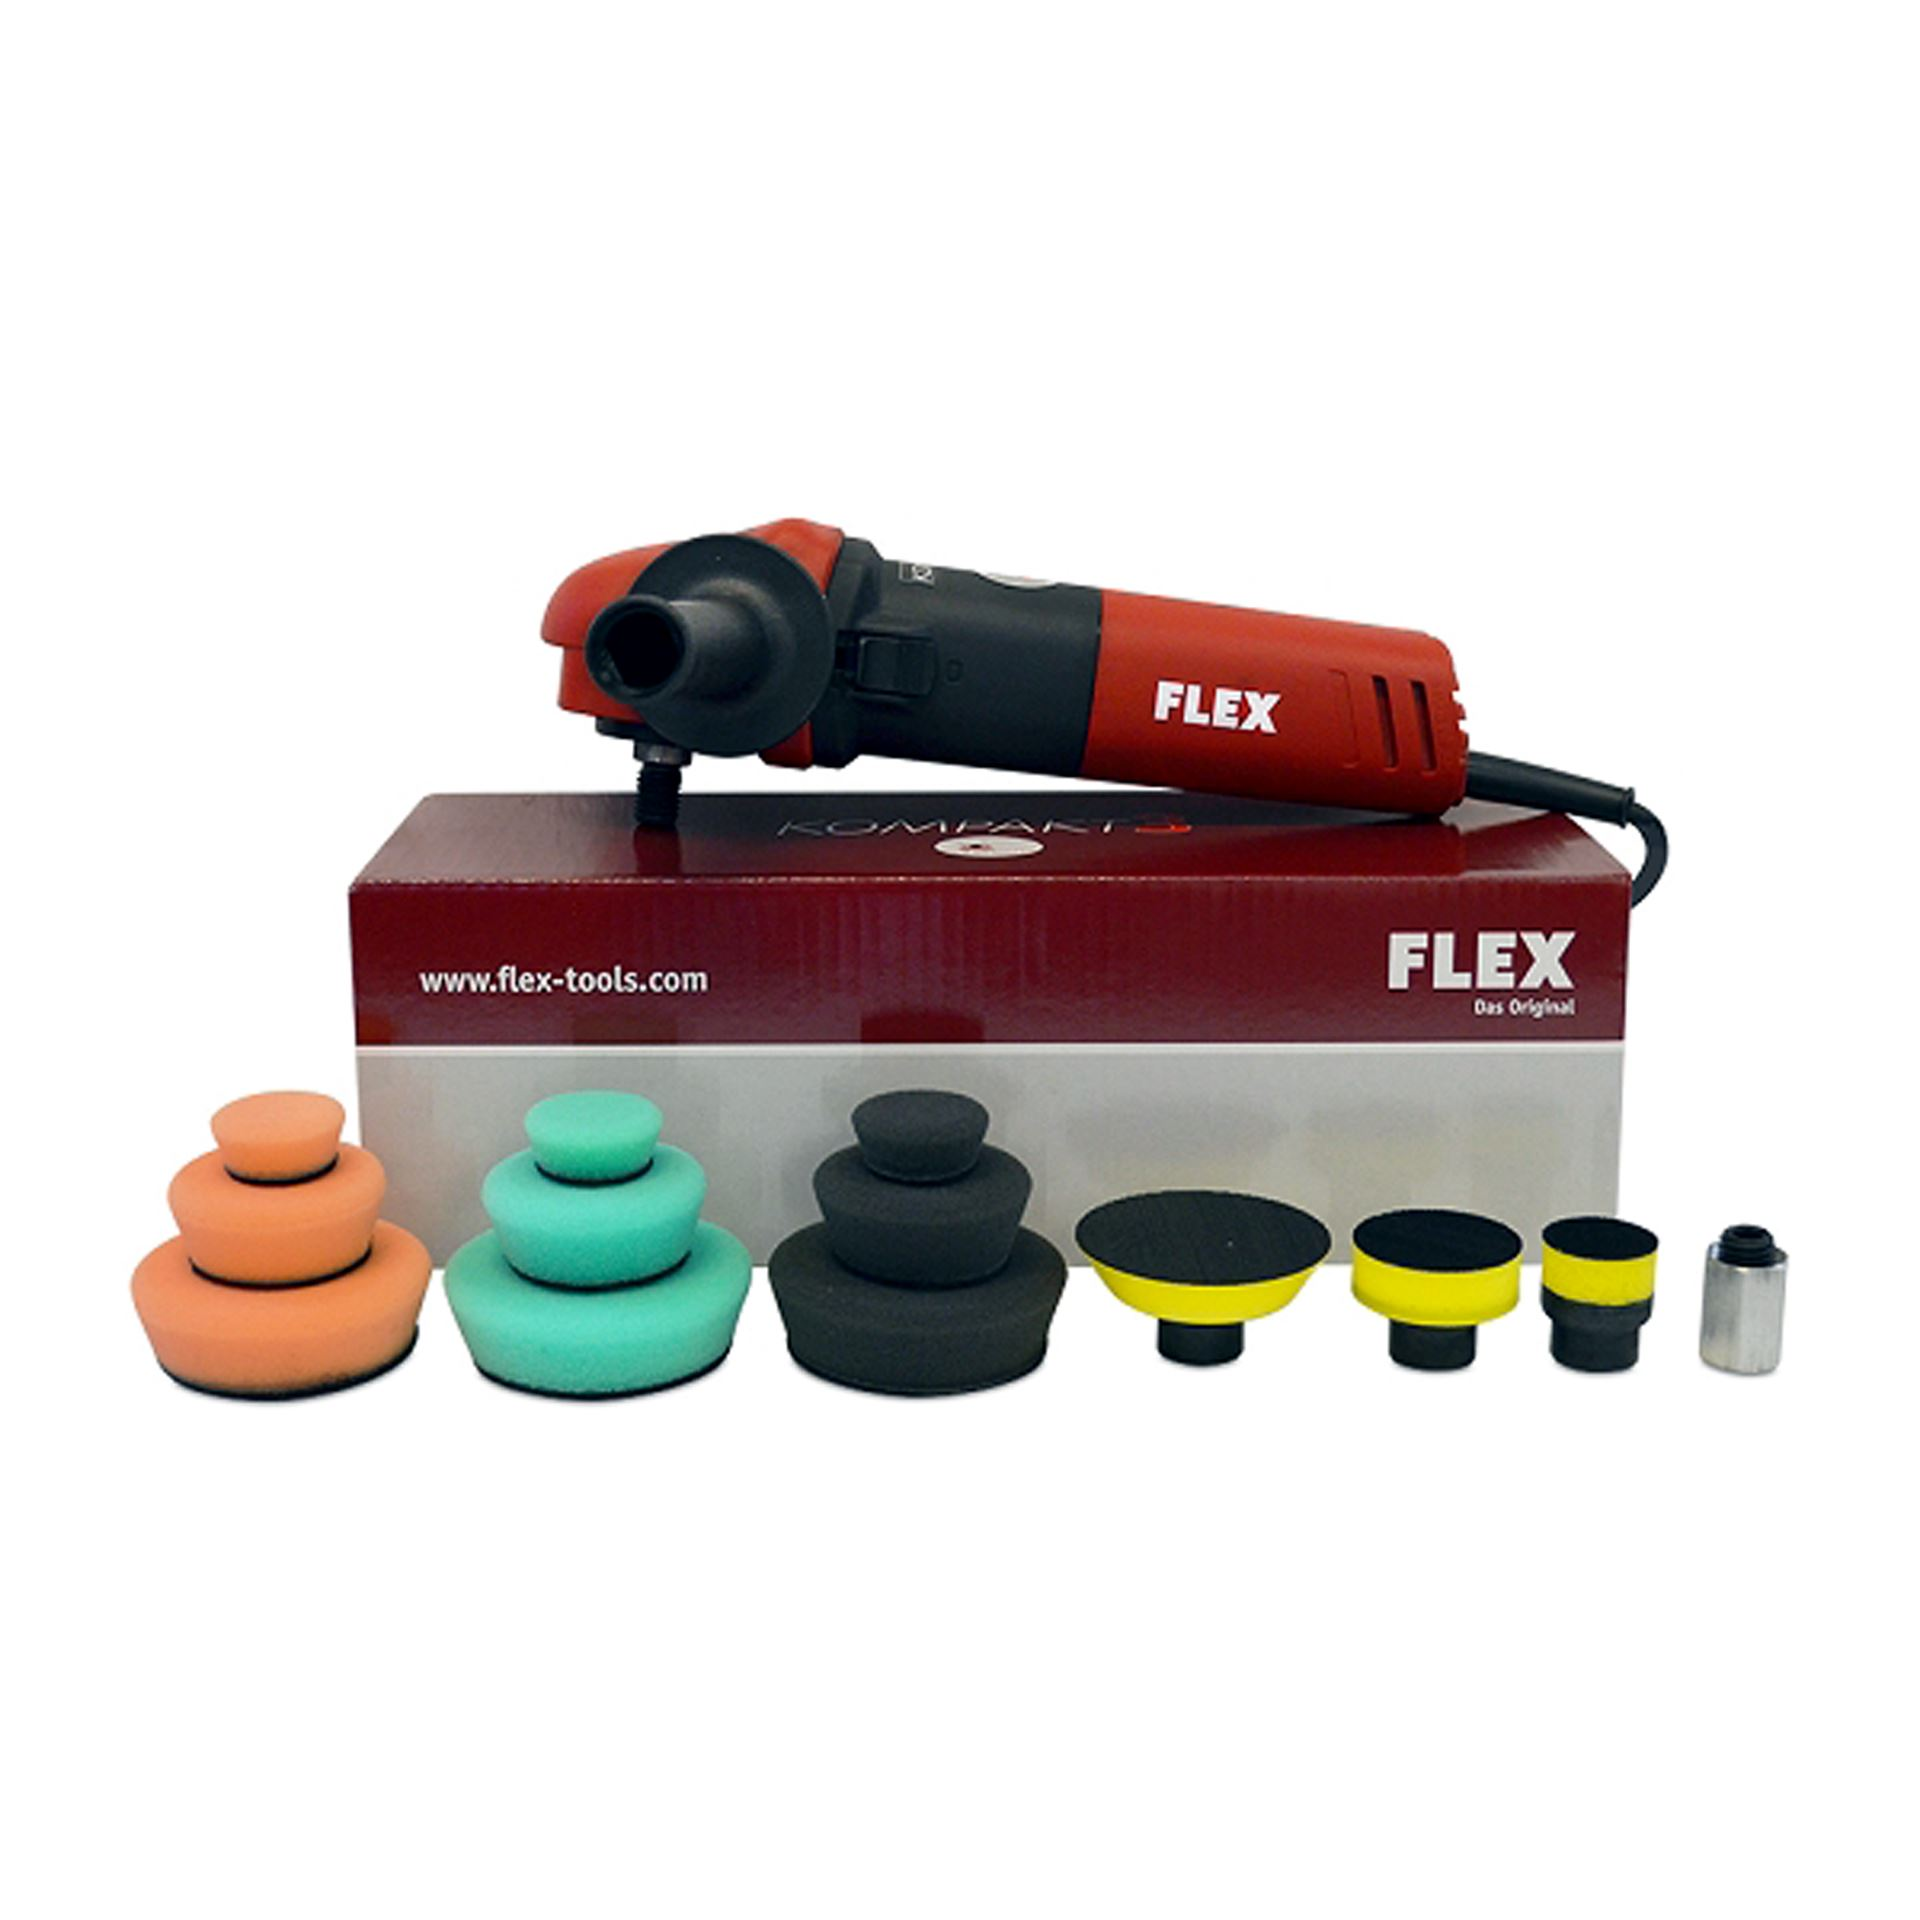 Kompact3 3 rotary polisher kit pe8 480kit professional detailing products because your car is for Professional car interior detailing kit